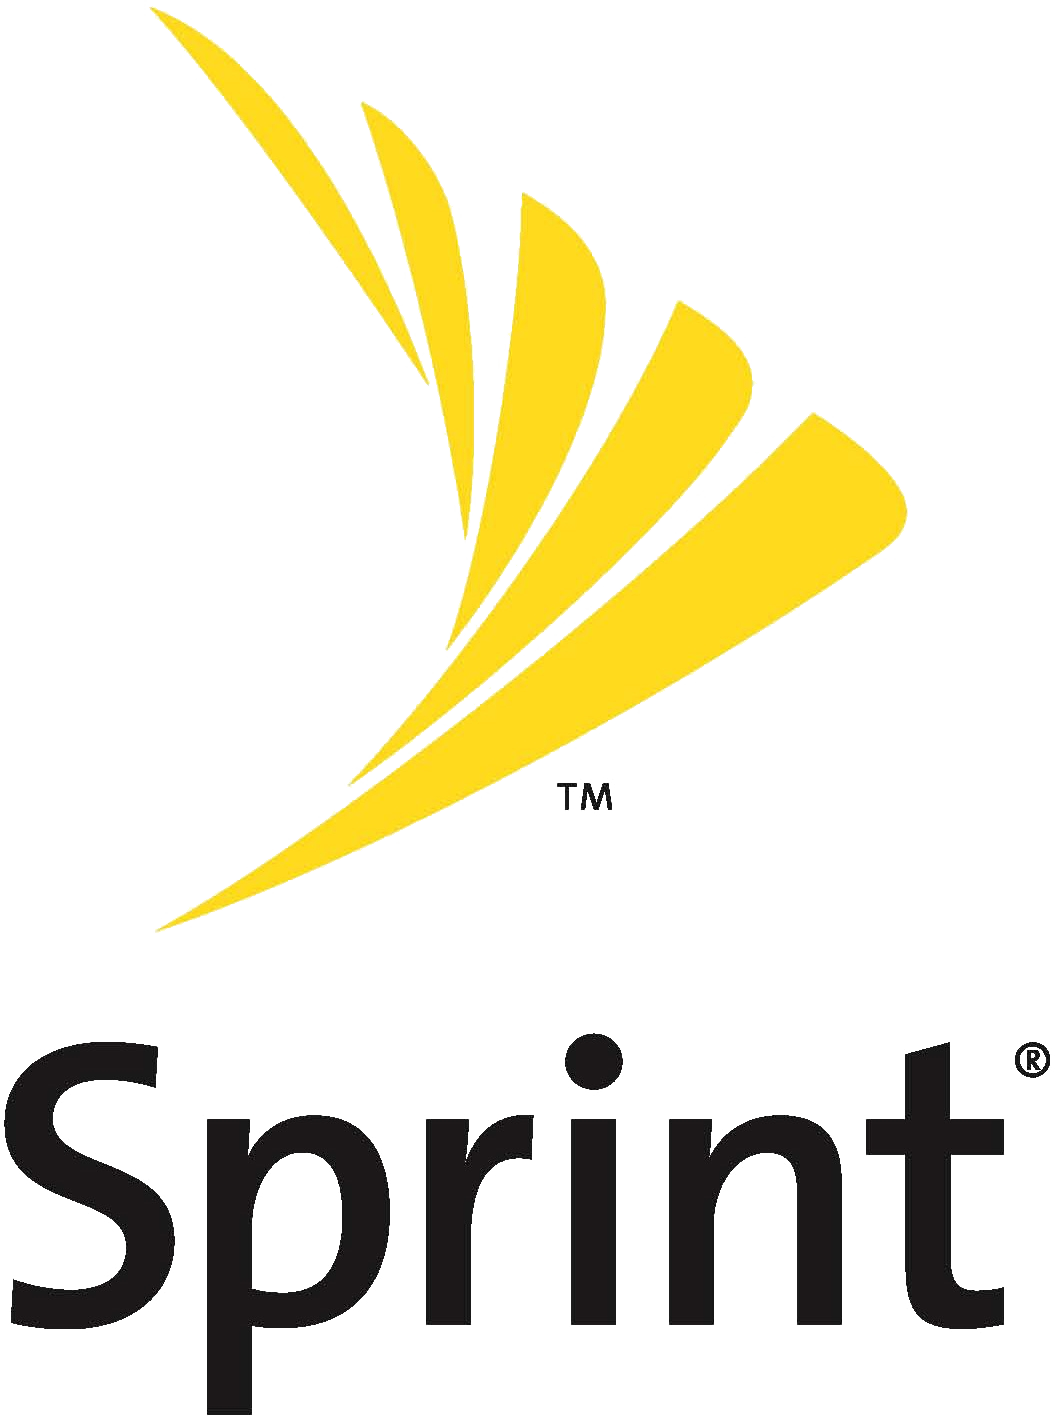 Sprint to End-of-Life iDEN Network Next Year